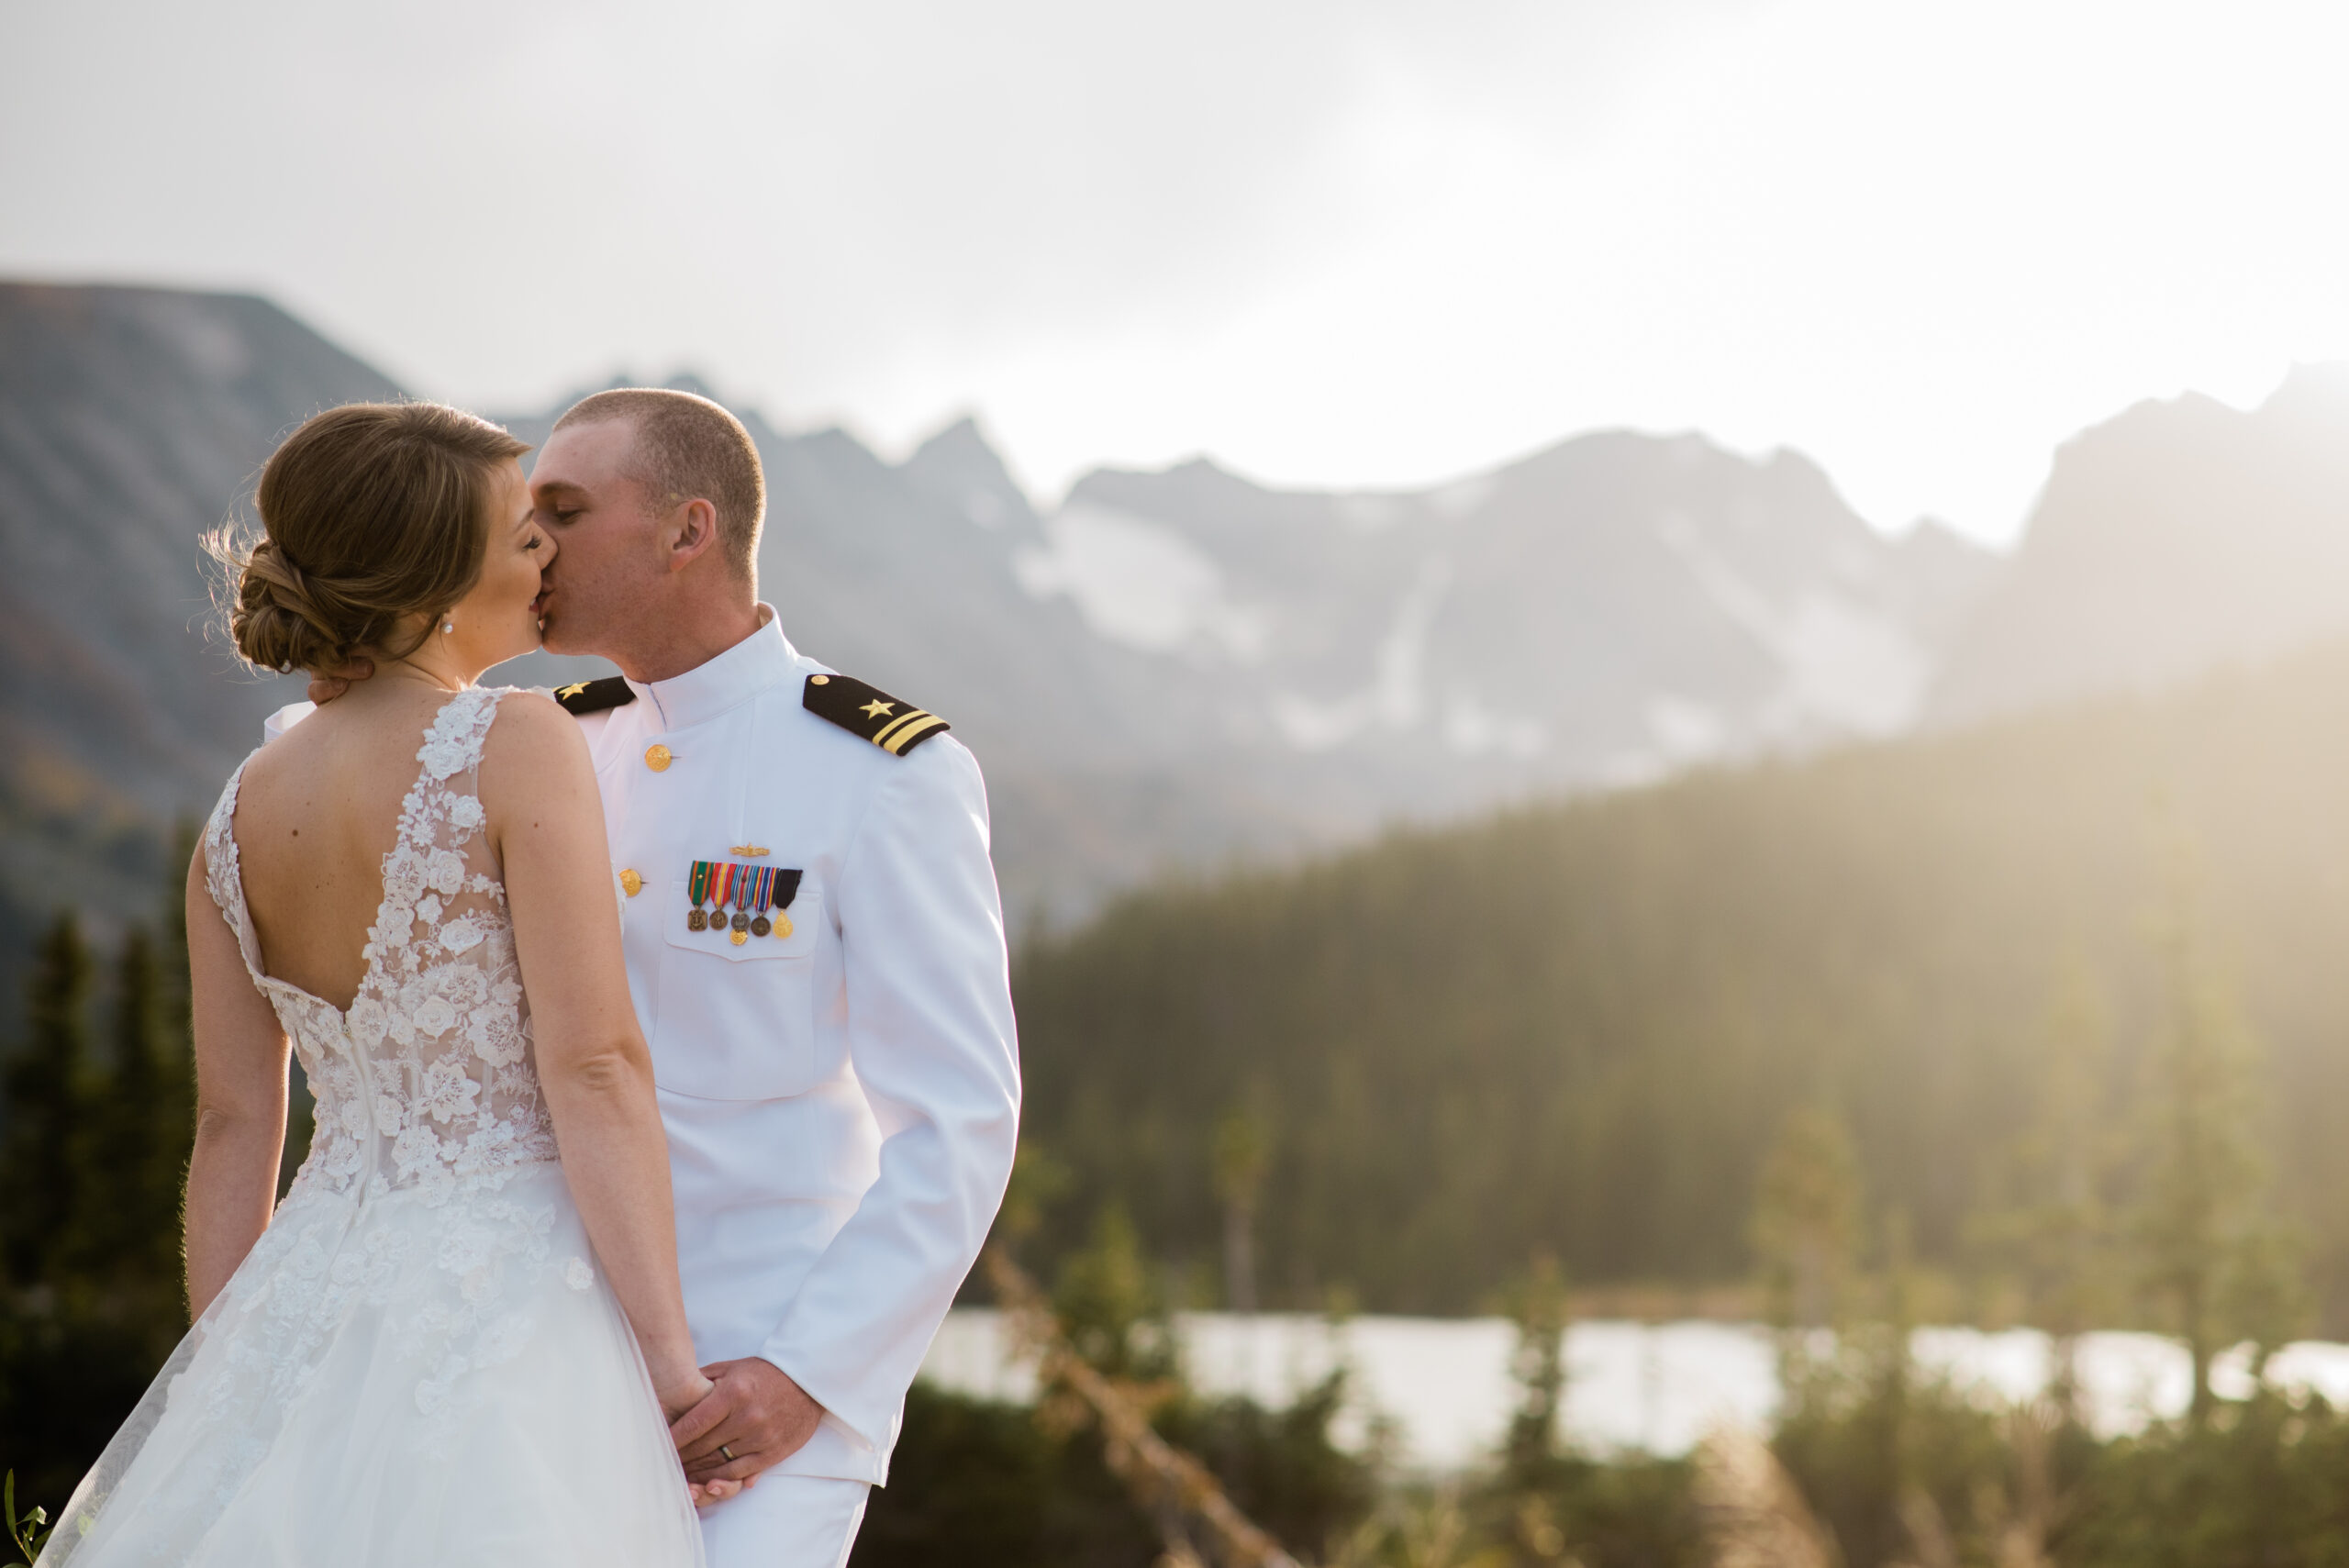 bride and groom standing by lake with mountains in the background